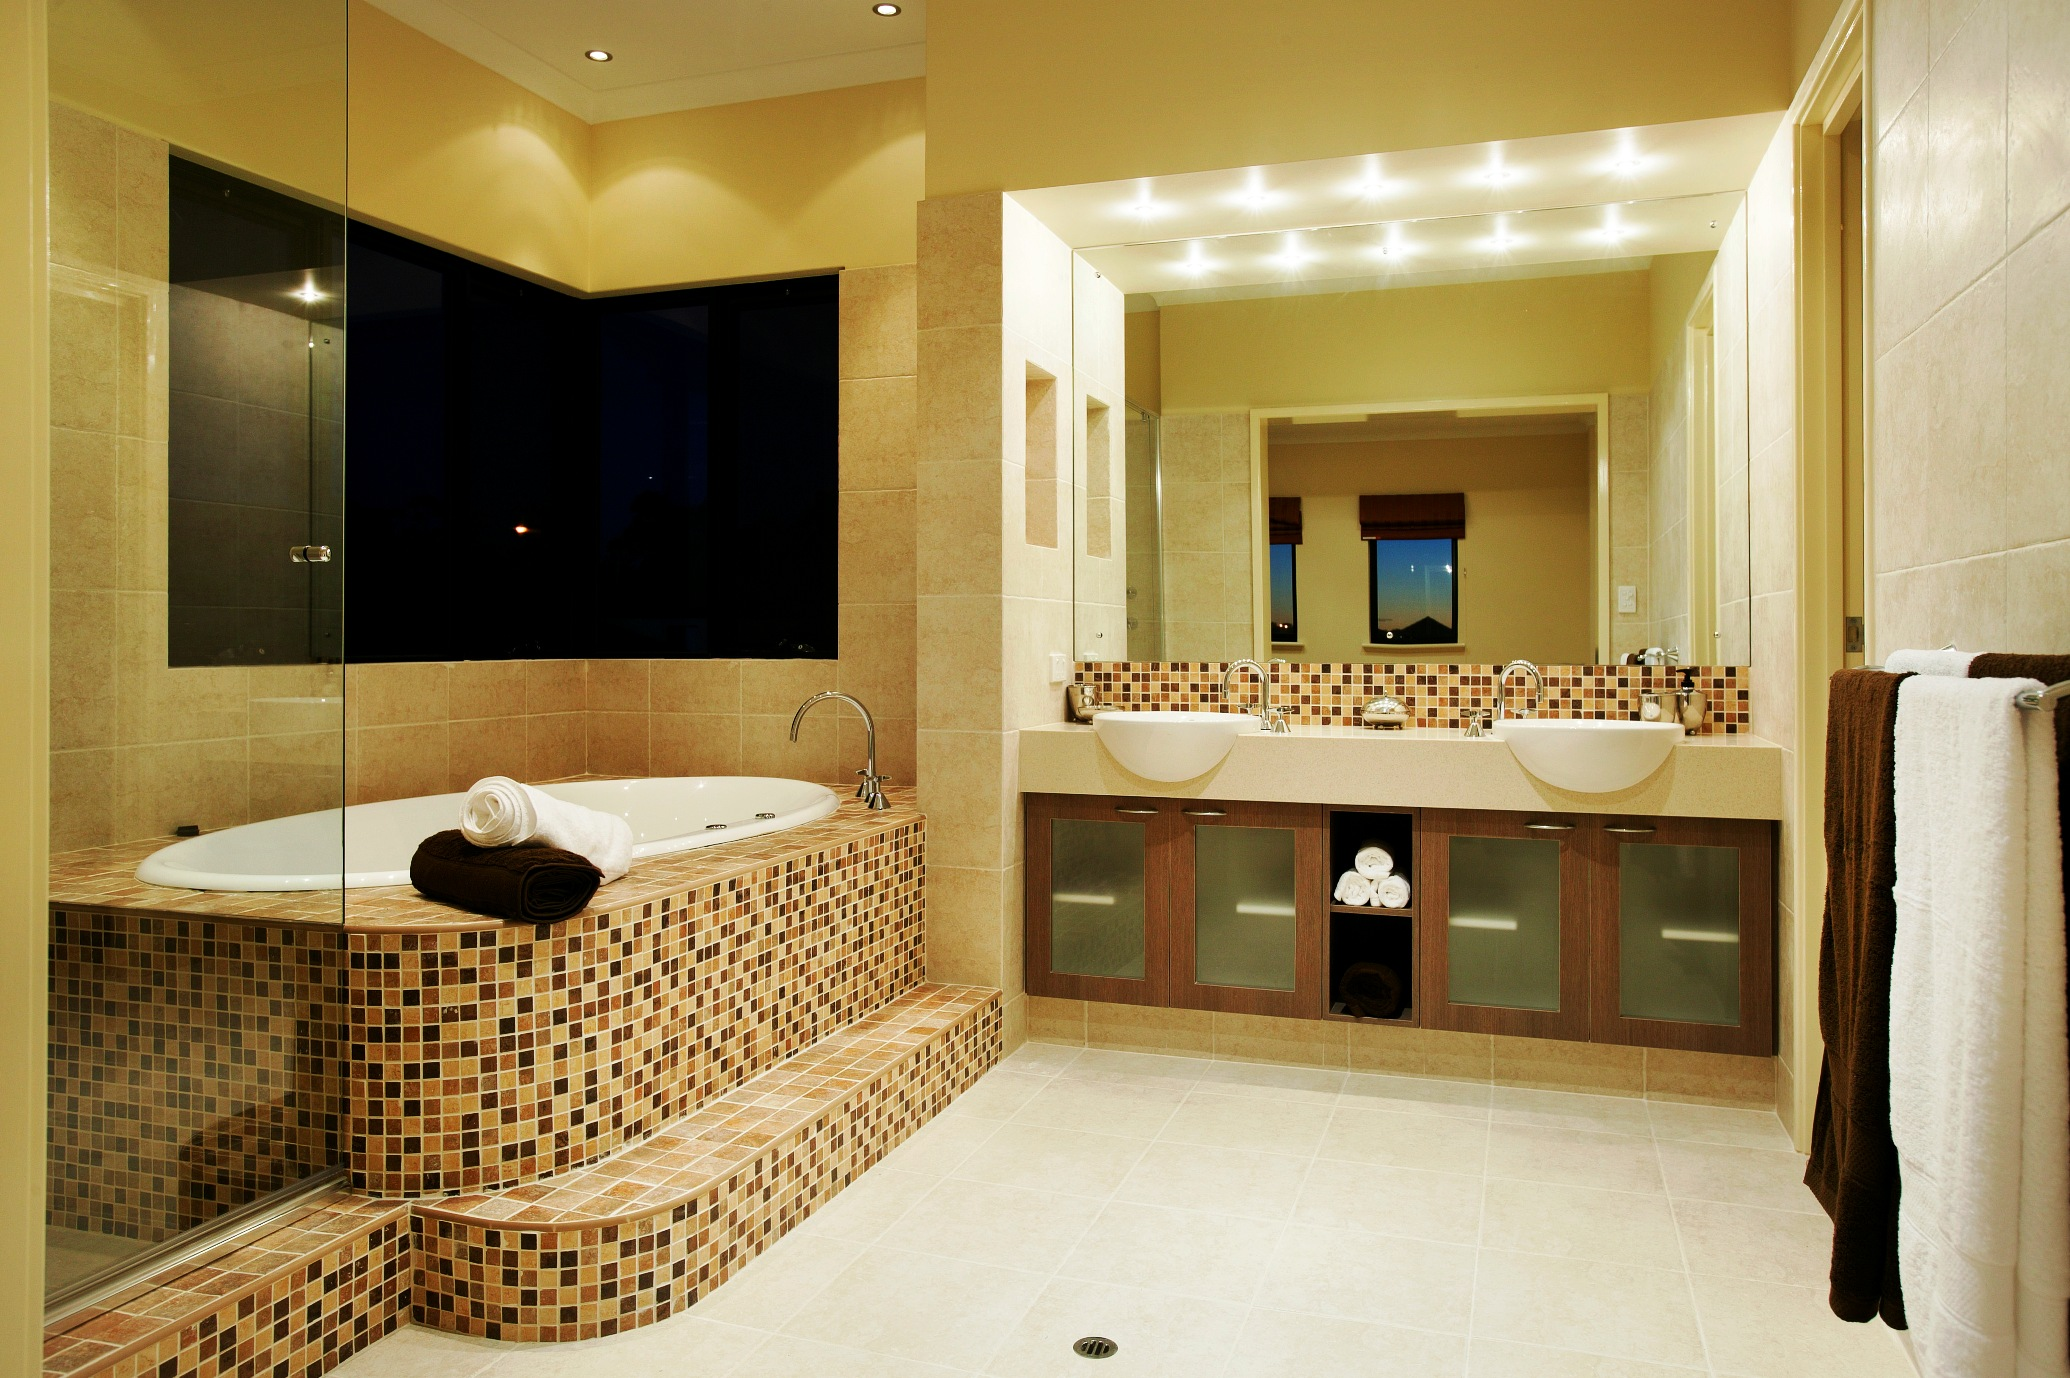 Amazing Bathroom Design Ideas 2070 x 1378 · 789 kB · jpeg